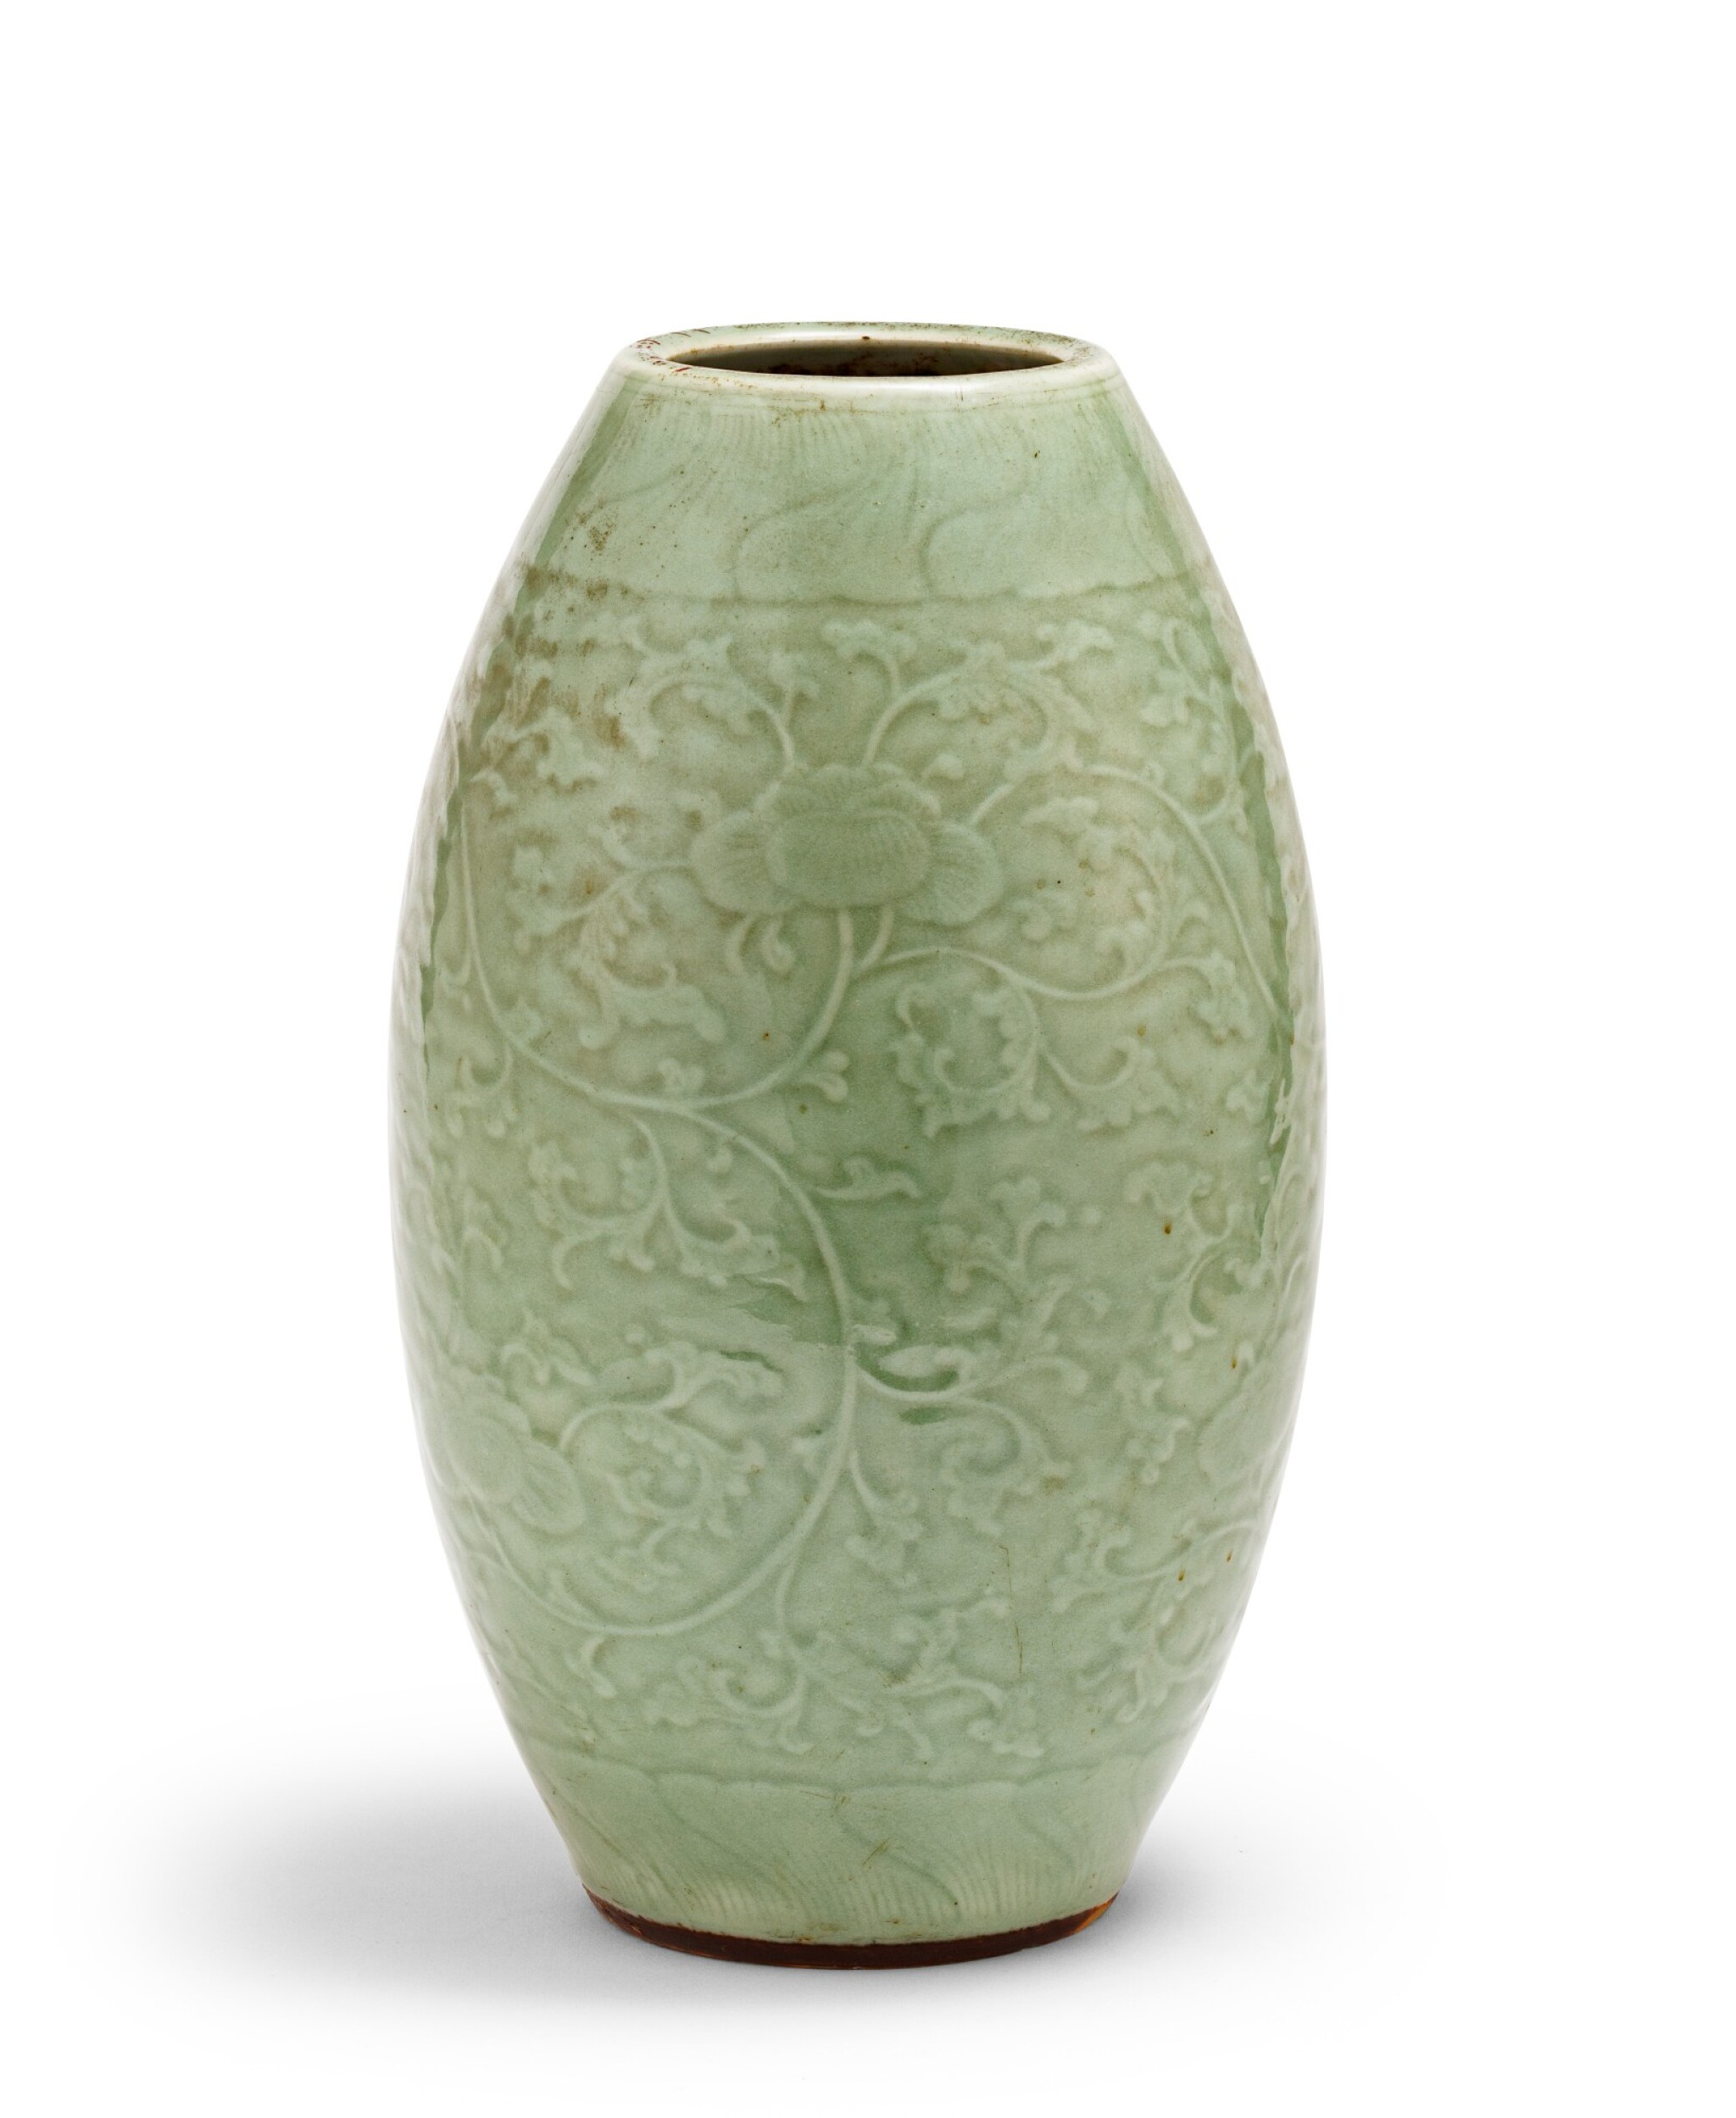 View 1 of Lot 9. Vase ovoïde de type Longquan céladon Dynastie Qing, XVIIIE siècle | 清十八世紀 青釉纏枝蓮紋橄欖瓶 | An ovoid Longquan-type celadon-glazed vase, Qing Dynasty, 18th century .